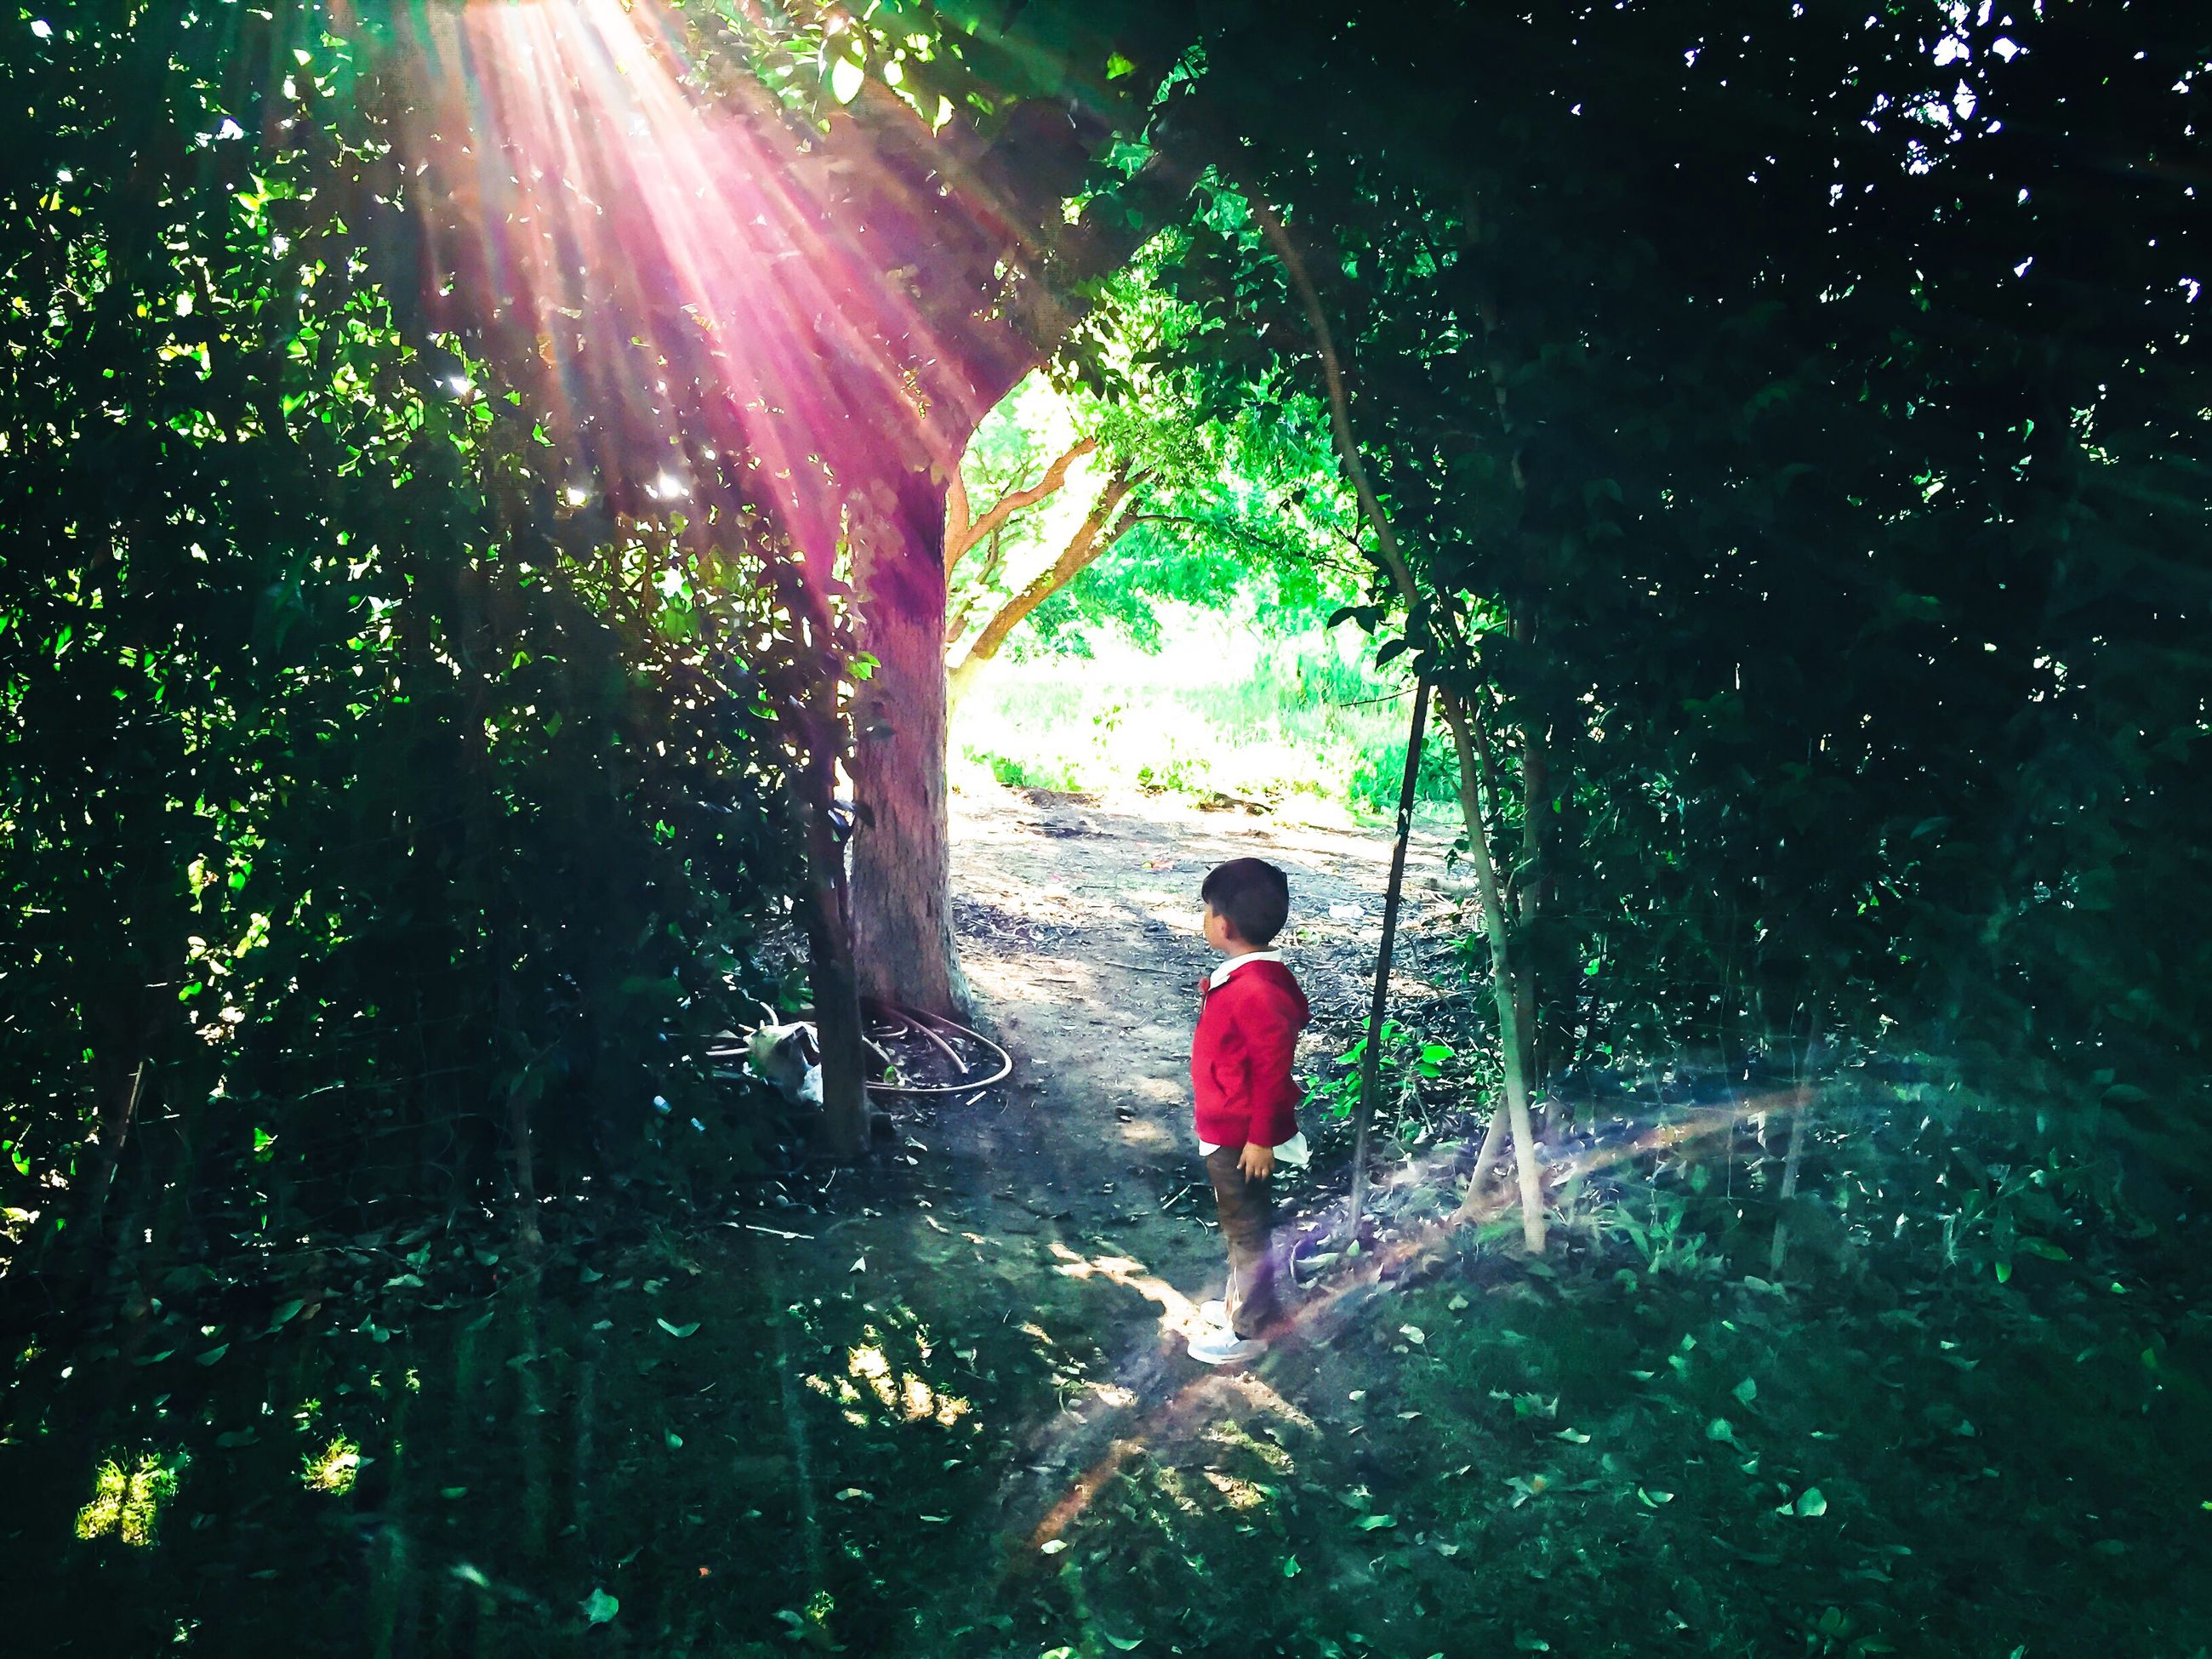 lifestyles, full length, leisure activity, tree, childhood, rear view, boys, sunlight, girls, casual clothing, walking, lens flare, standing, elementary age, growth, sunbeam, men, water